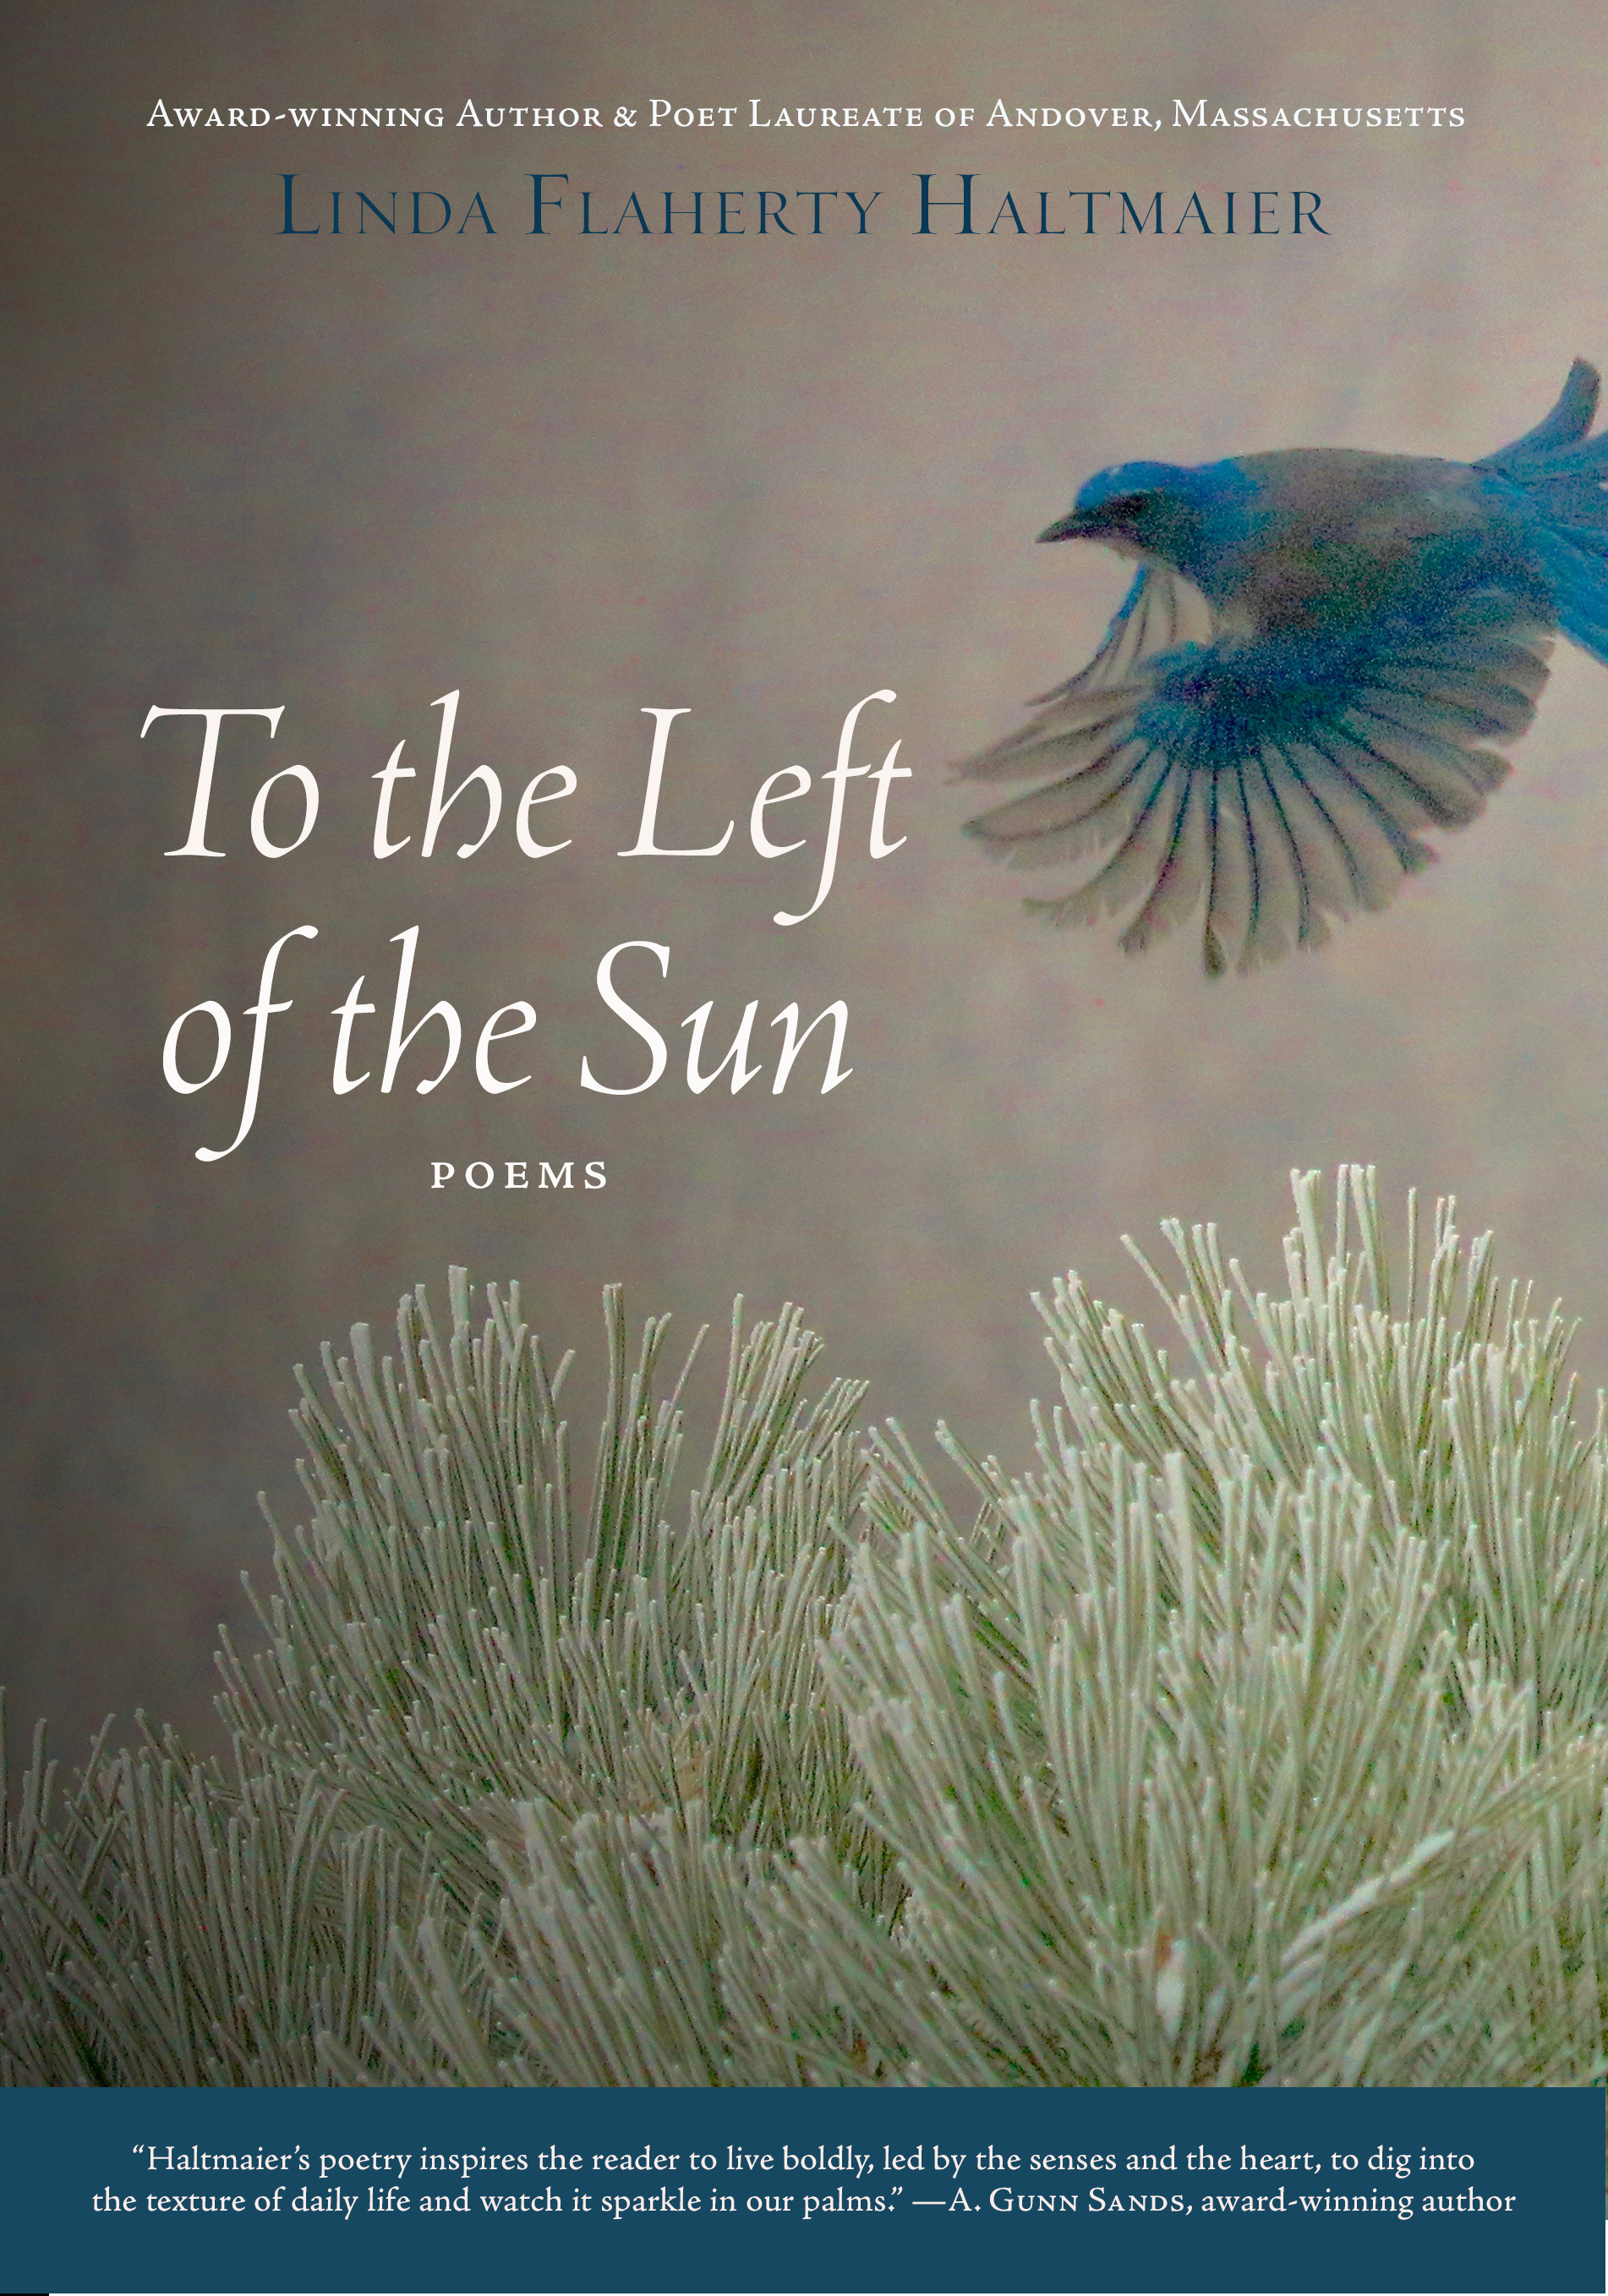 To the Left of the Sun